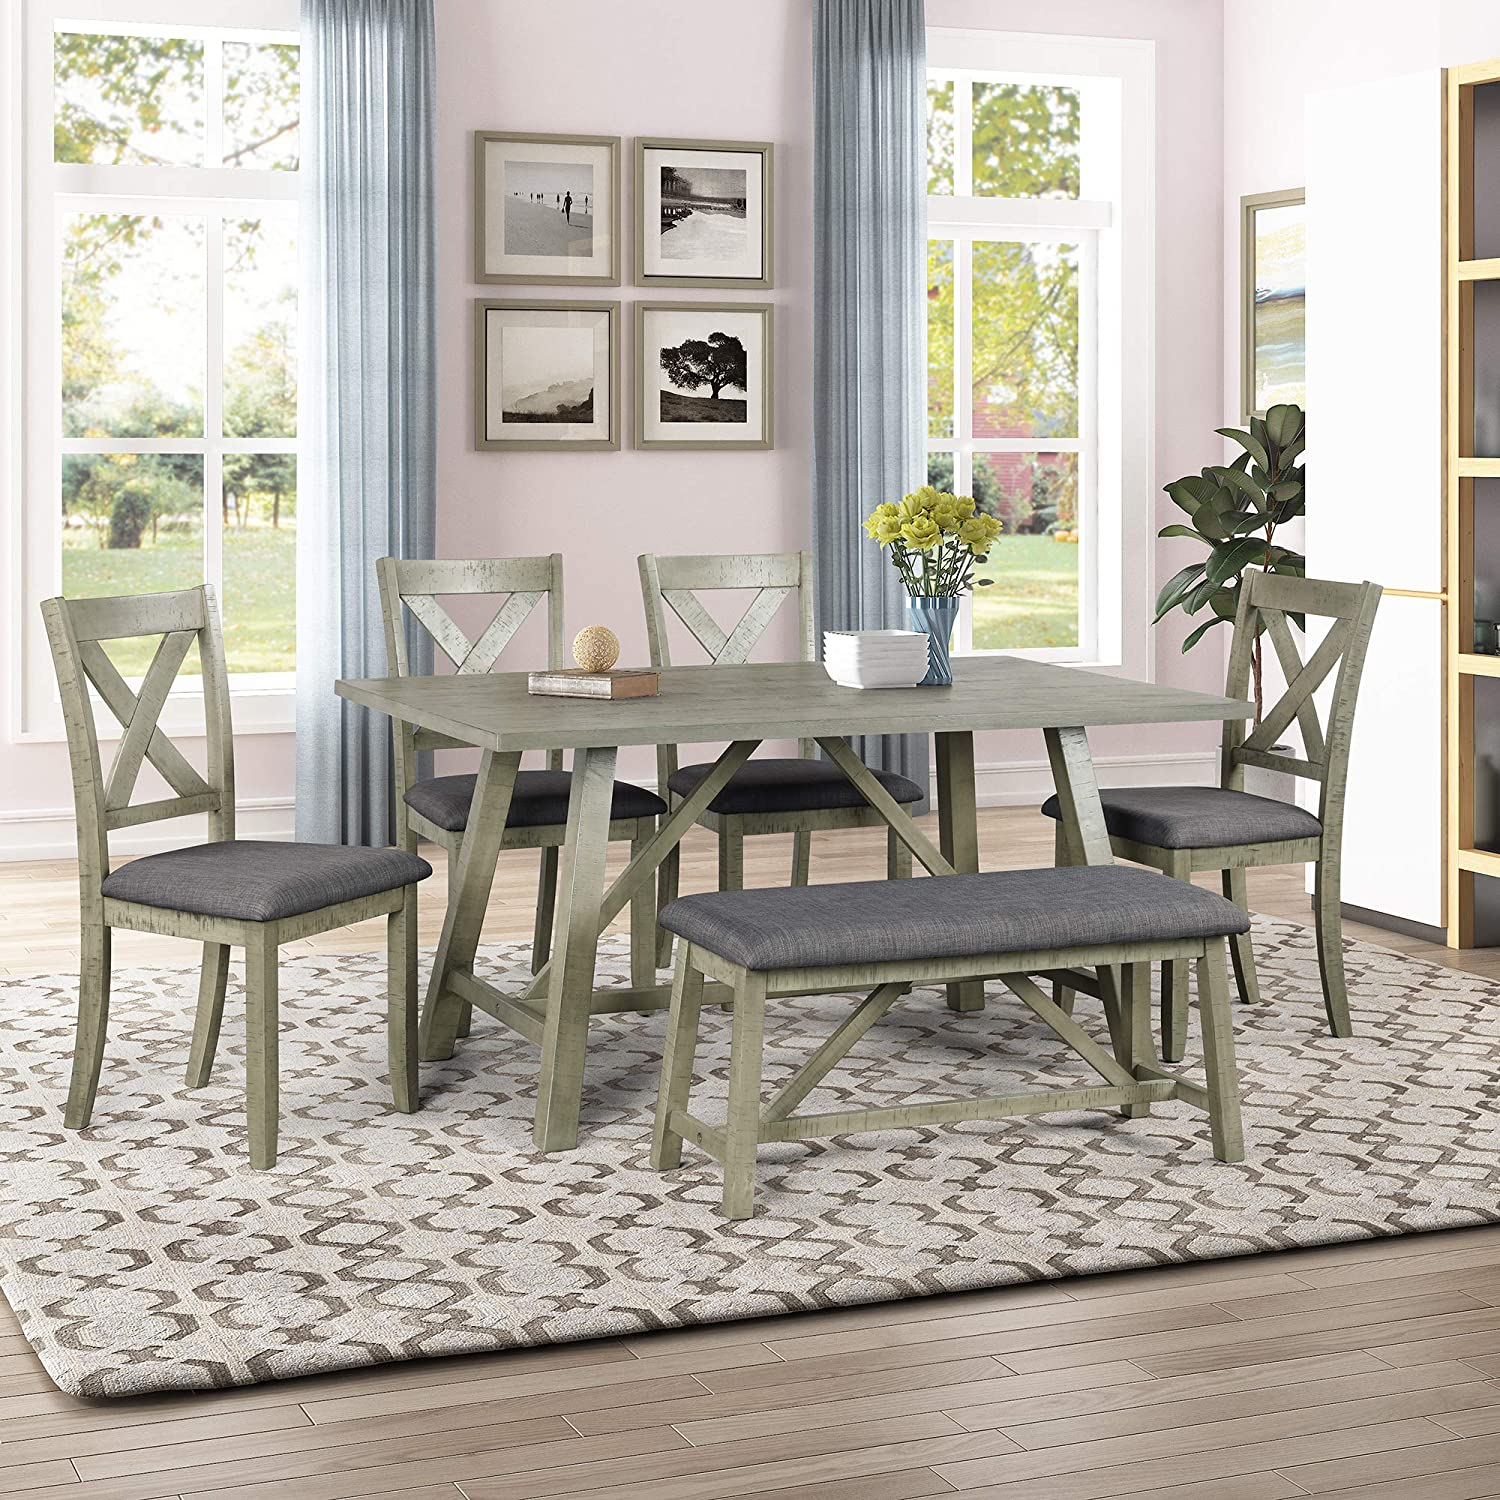 Padded Chairs Wood Dining Table, 6 Piece Dining Room Set